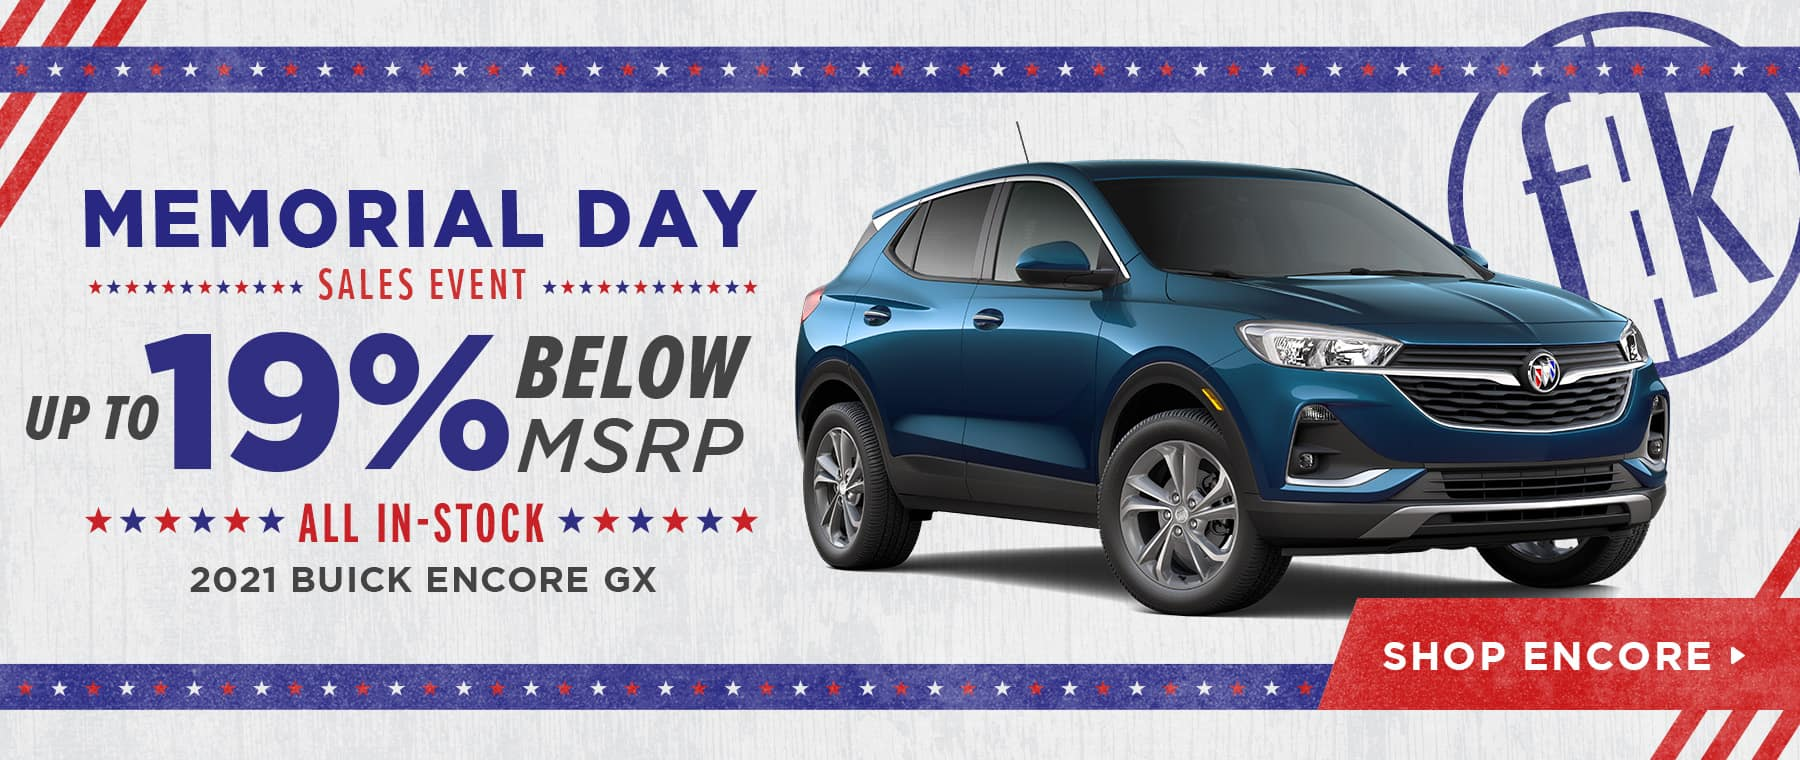 Up To 19% Below MSRP All In-Stock 2021 Buick Encore GX